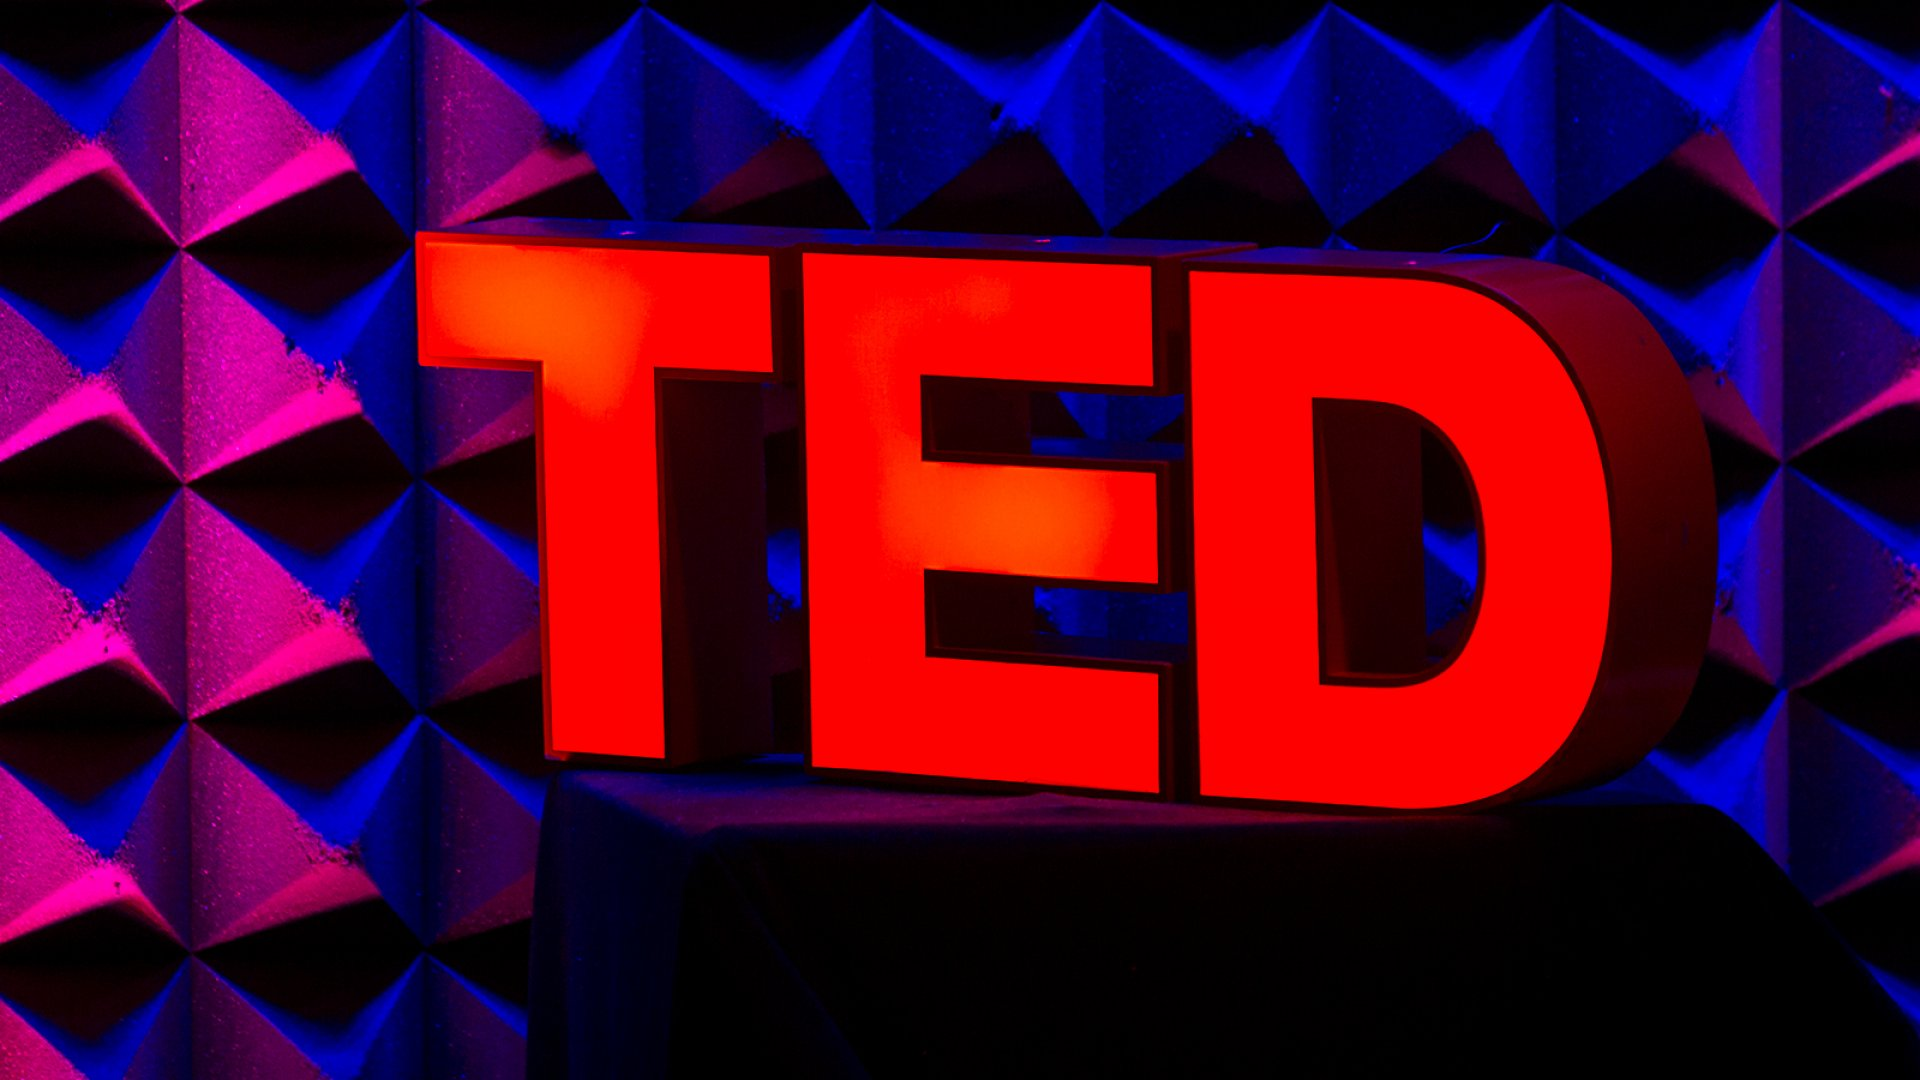 Blowing it at TED taught me some extremely valuable, lifelong lessons.